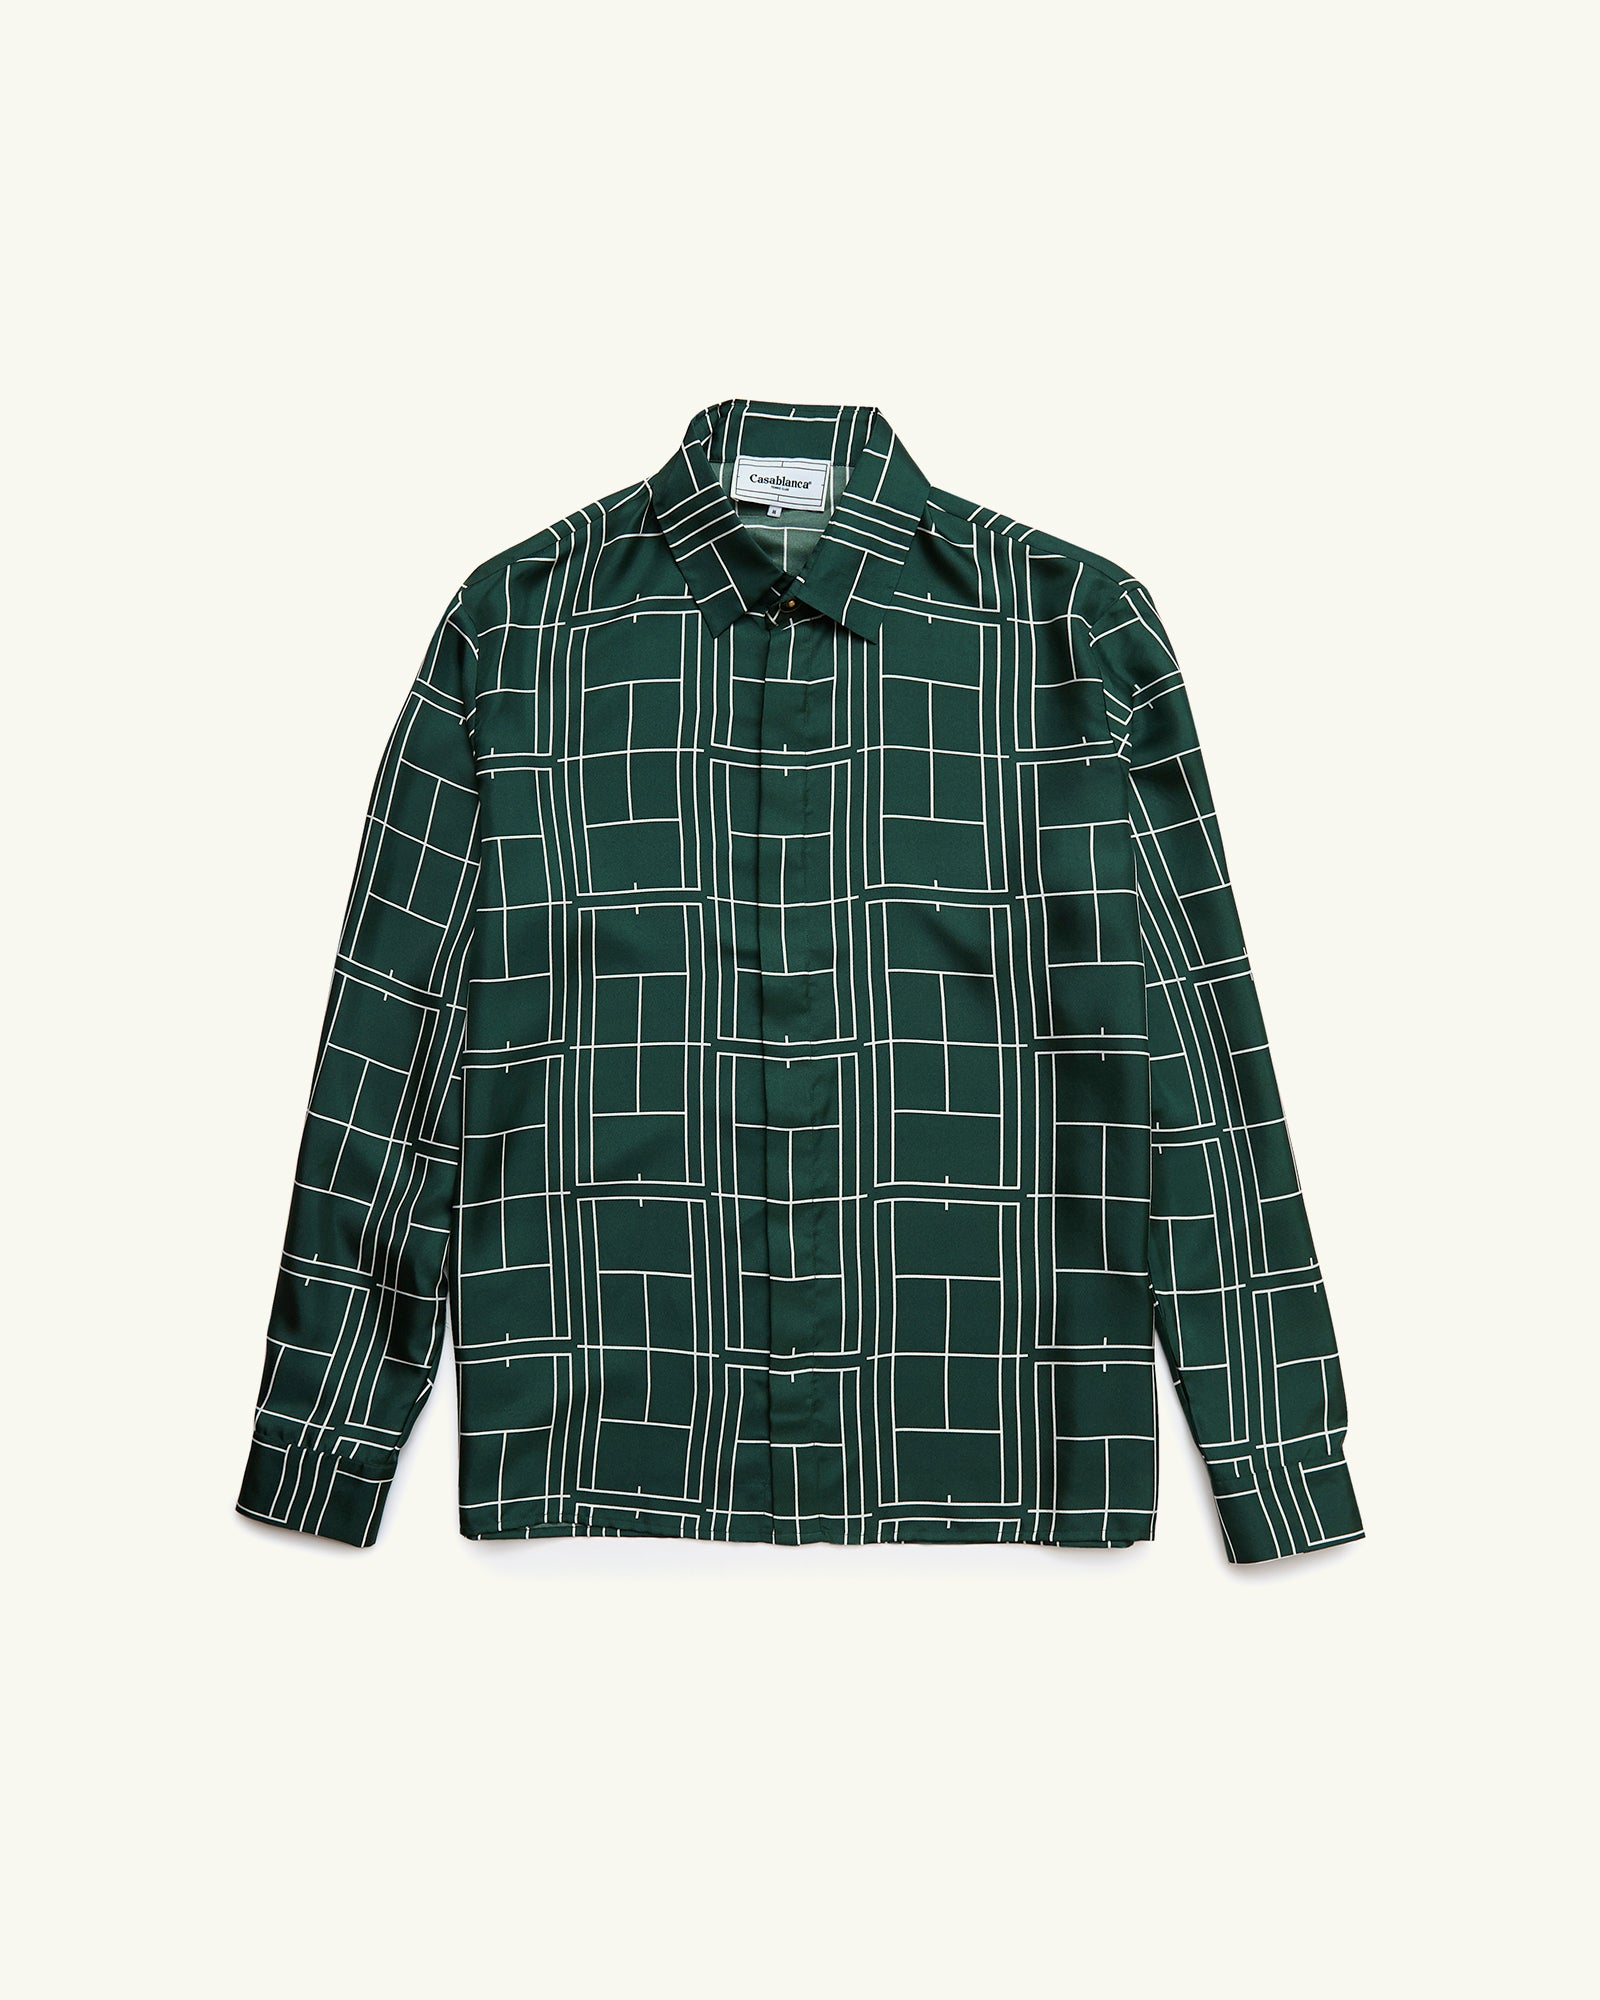 COURTS GREEN SILK SHIRT